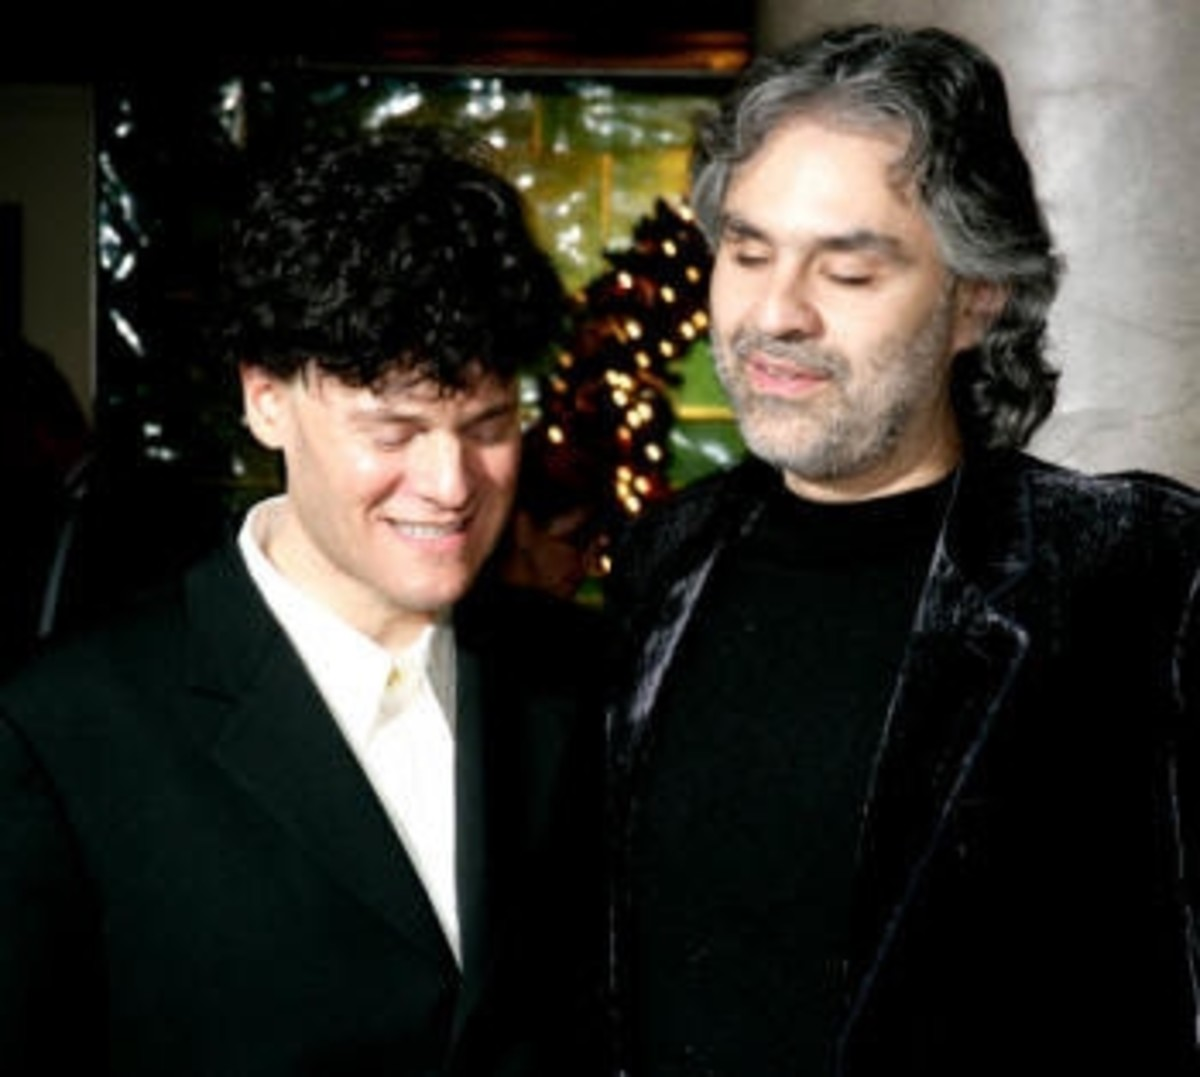 Drew and Andrea Bocelli share a moment at a Bocelli foundation event where Drew was asked to perform.